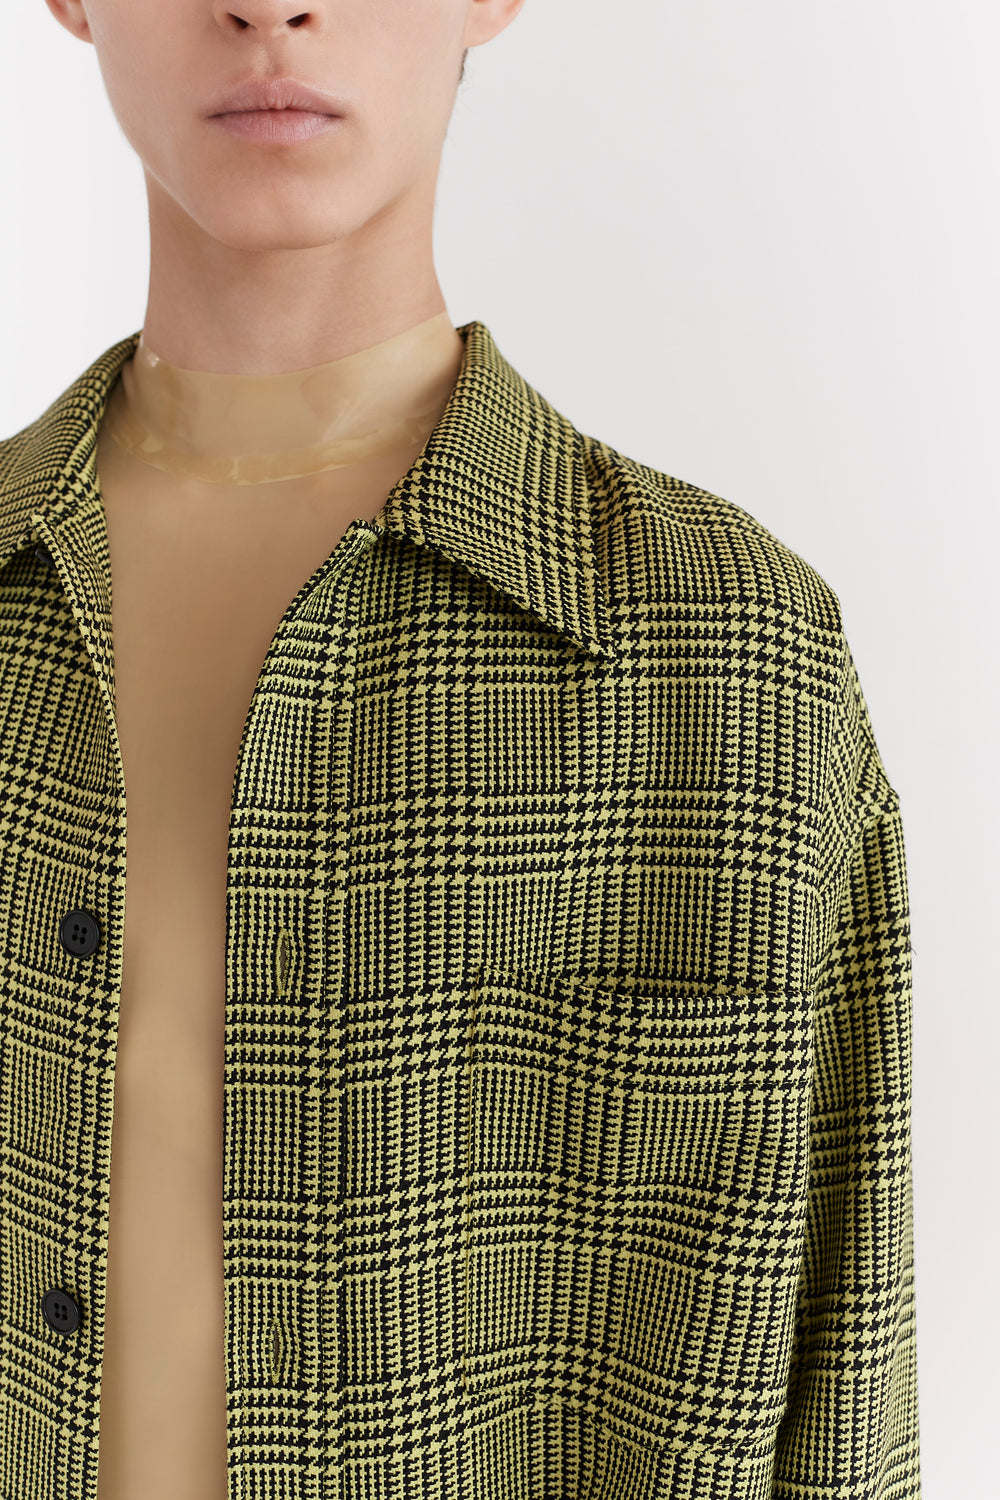 Sergey Overshirt Yellow Check